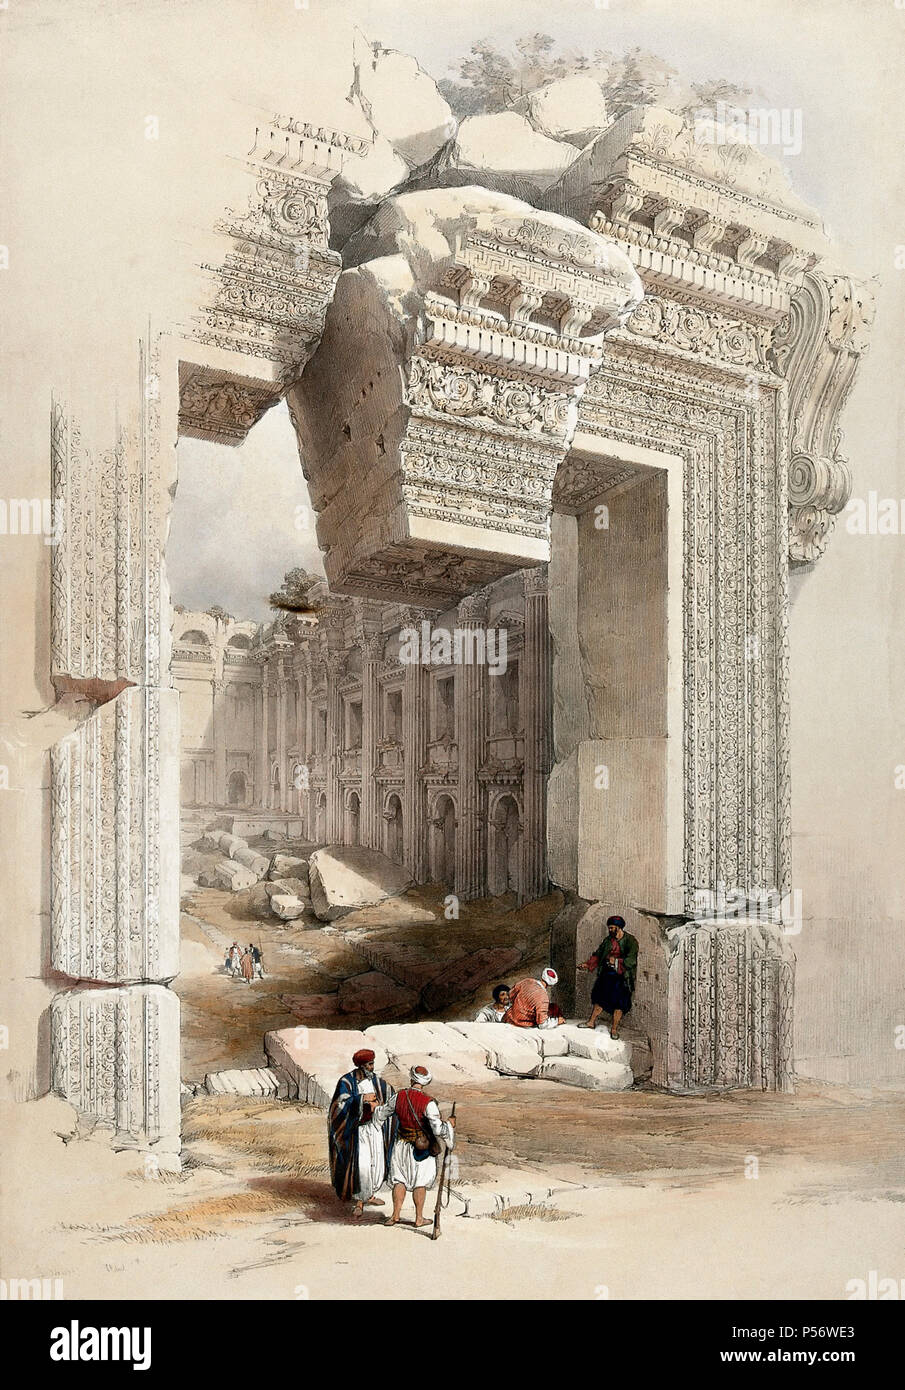 The Doorway, Baalbec, Lebanon.  Lithograph by Louis Haghe, after David Roberts. - Stock Image